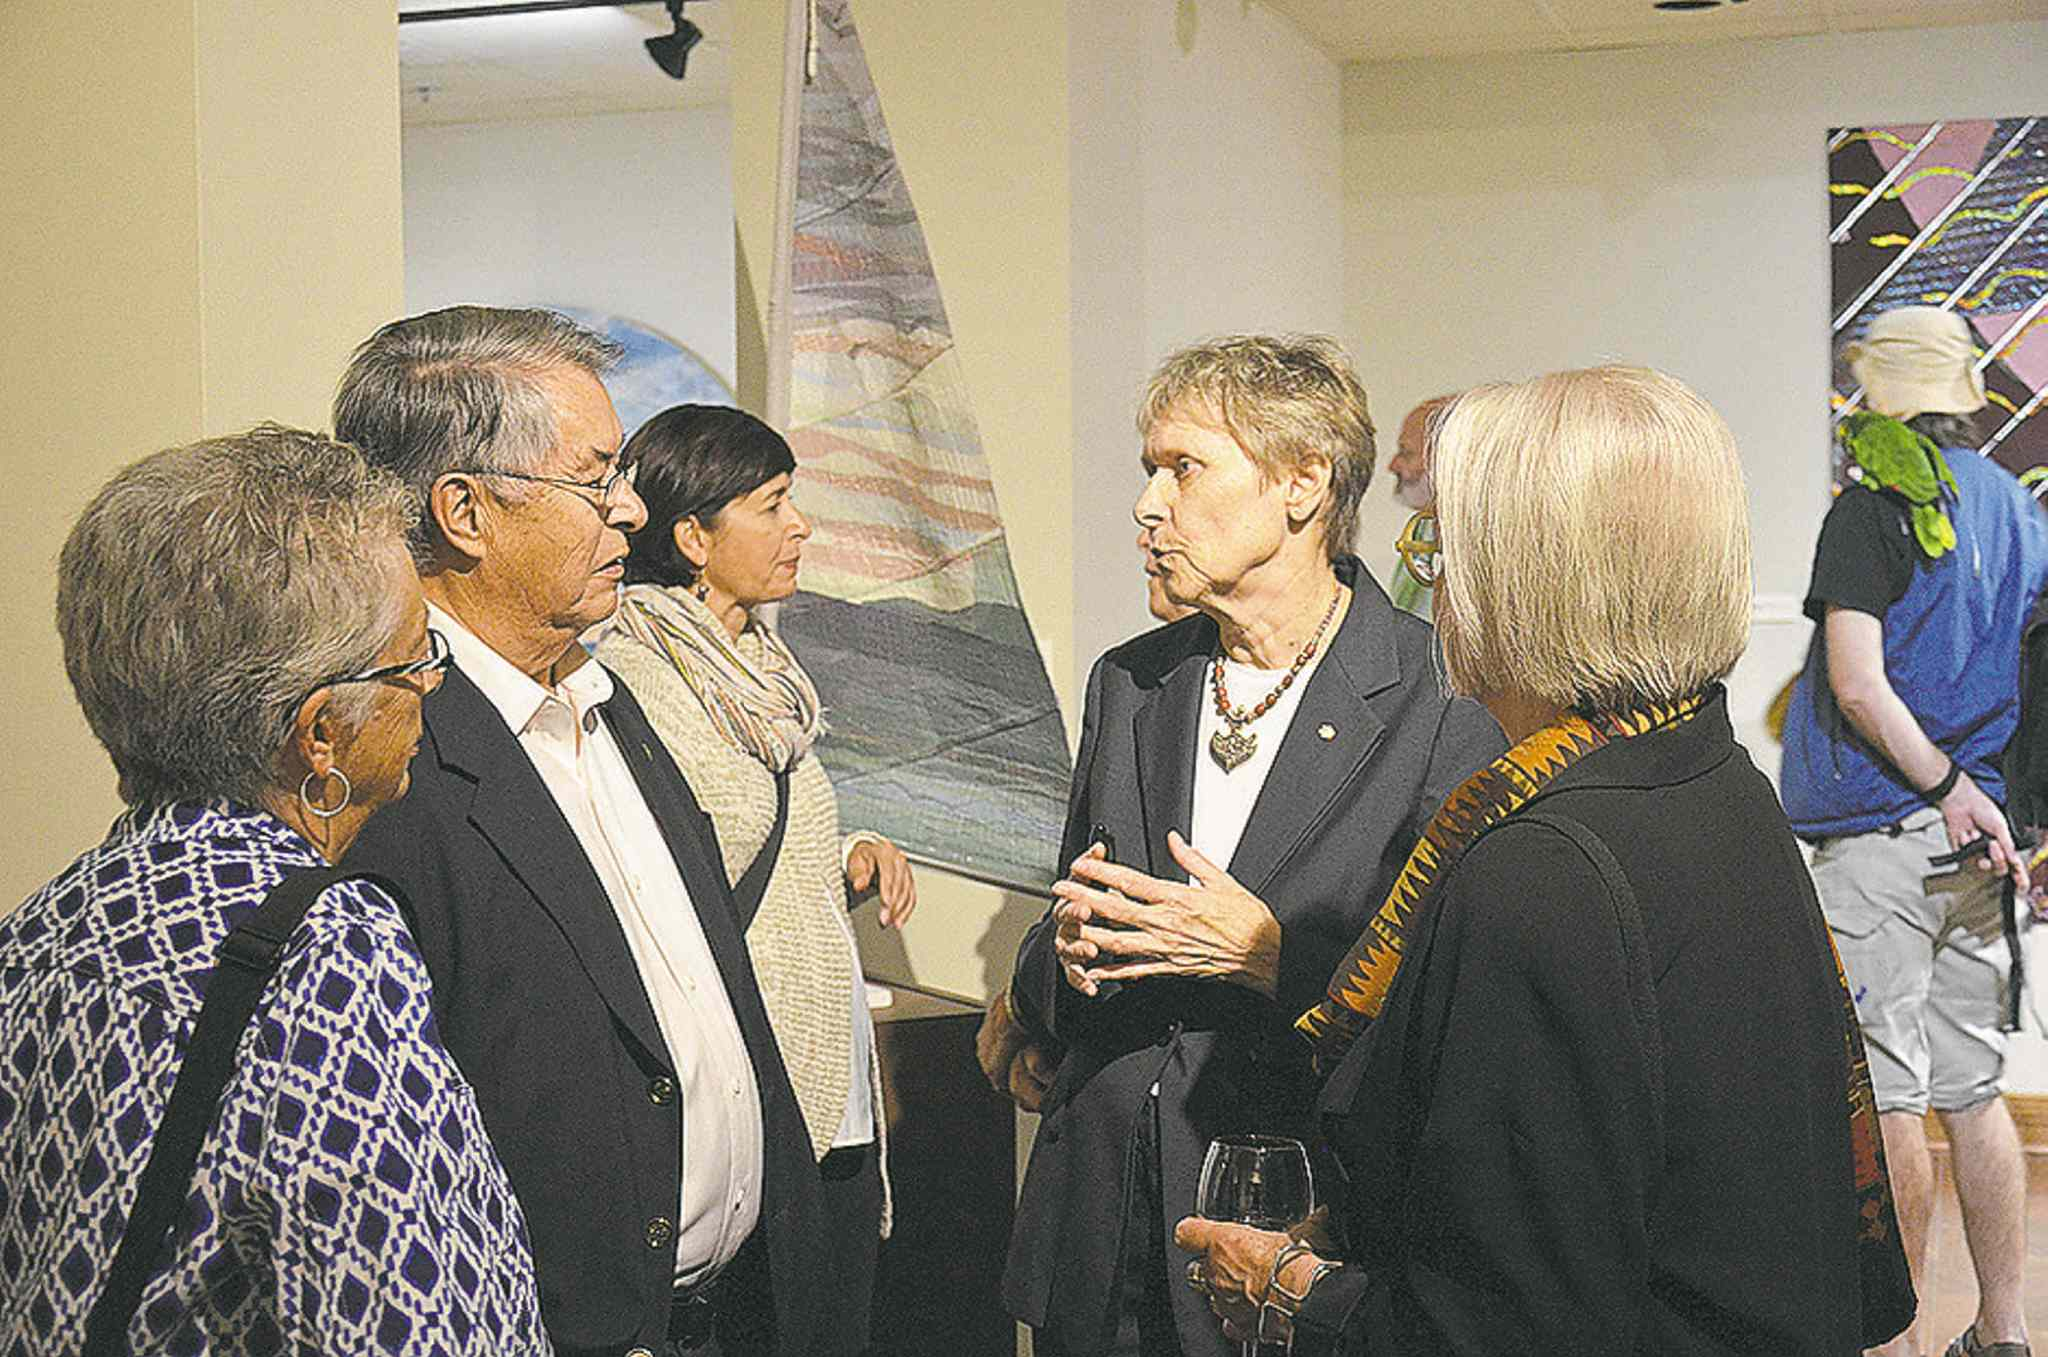 Roberta Bondar (second right) discusses her work at The Buhler Gallery in St. Boniface Hospital.